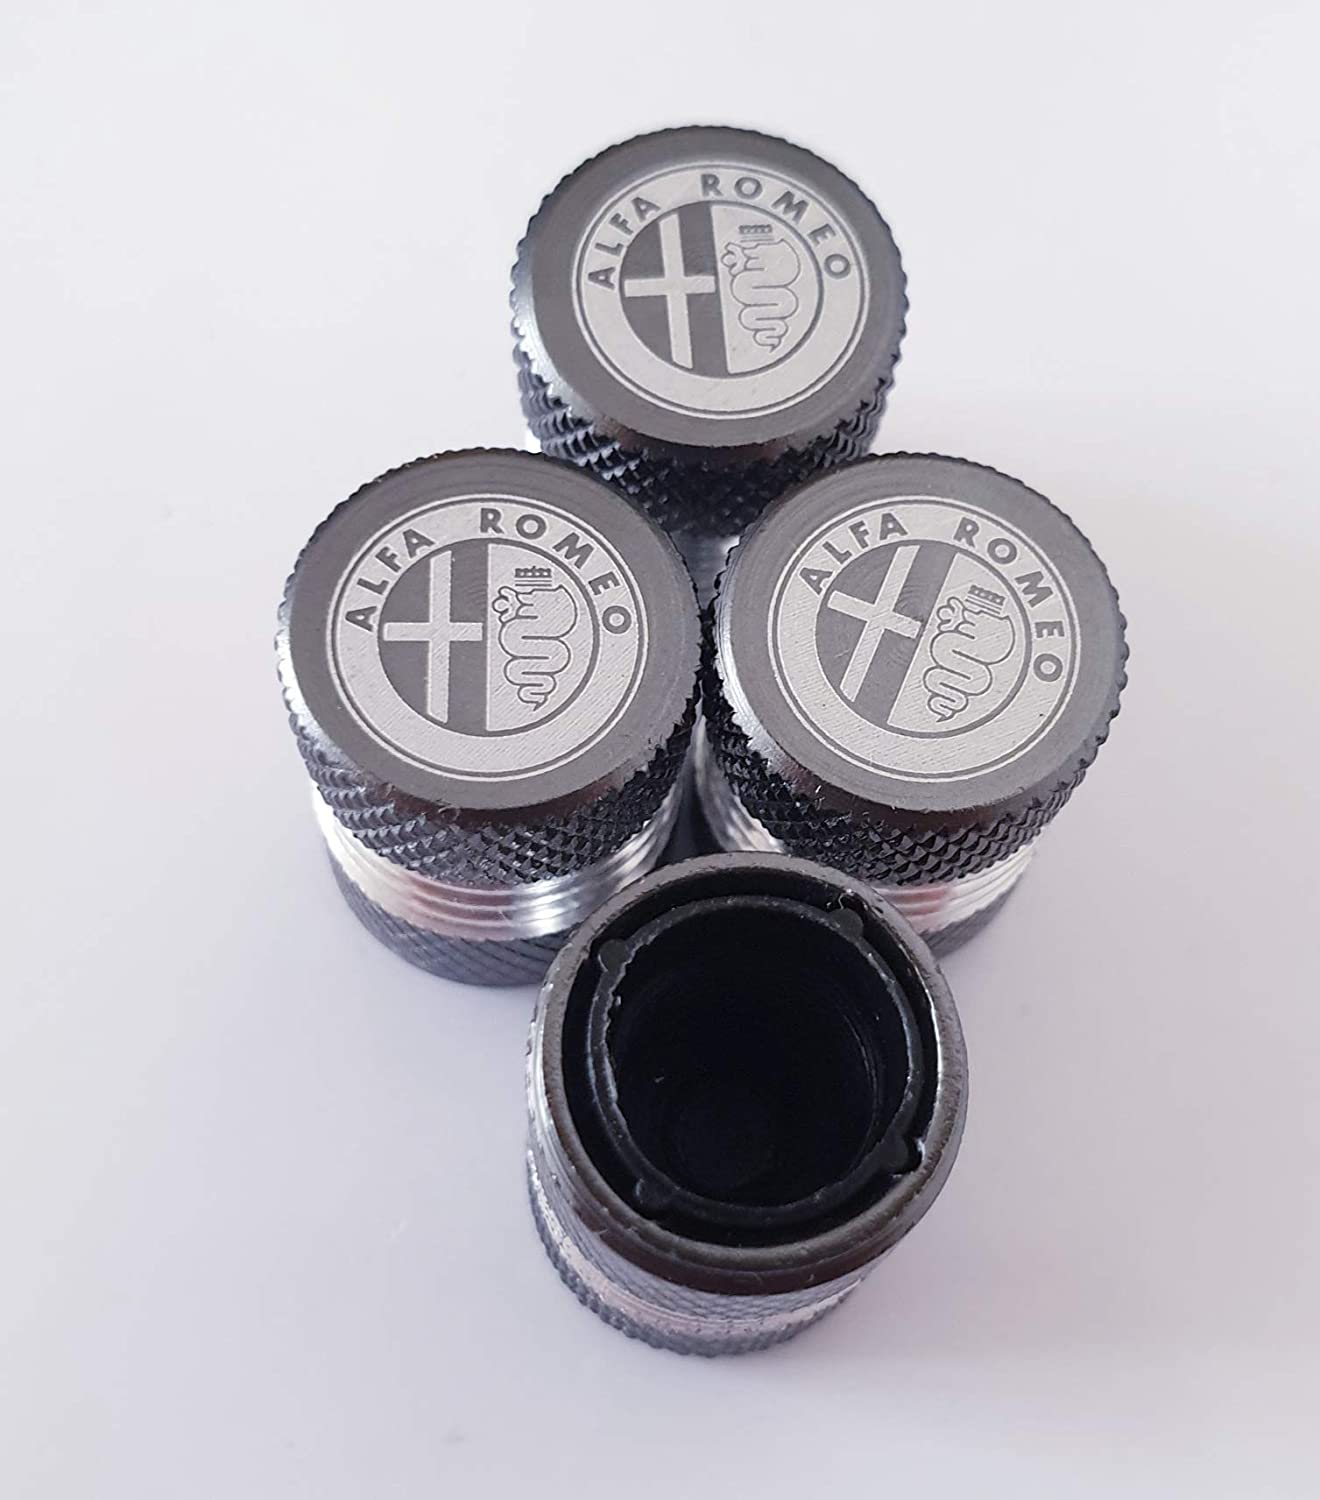 Speed Demons ALFA ROMEO Grey Laser Engraved Valve Dust Caps for all models Cars with Plastic Insides Non Stick to Valves